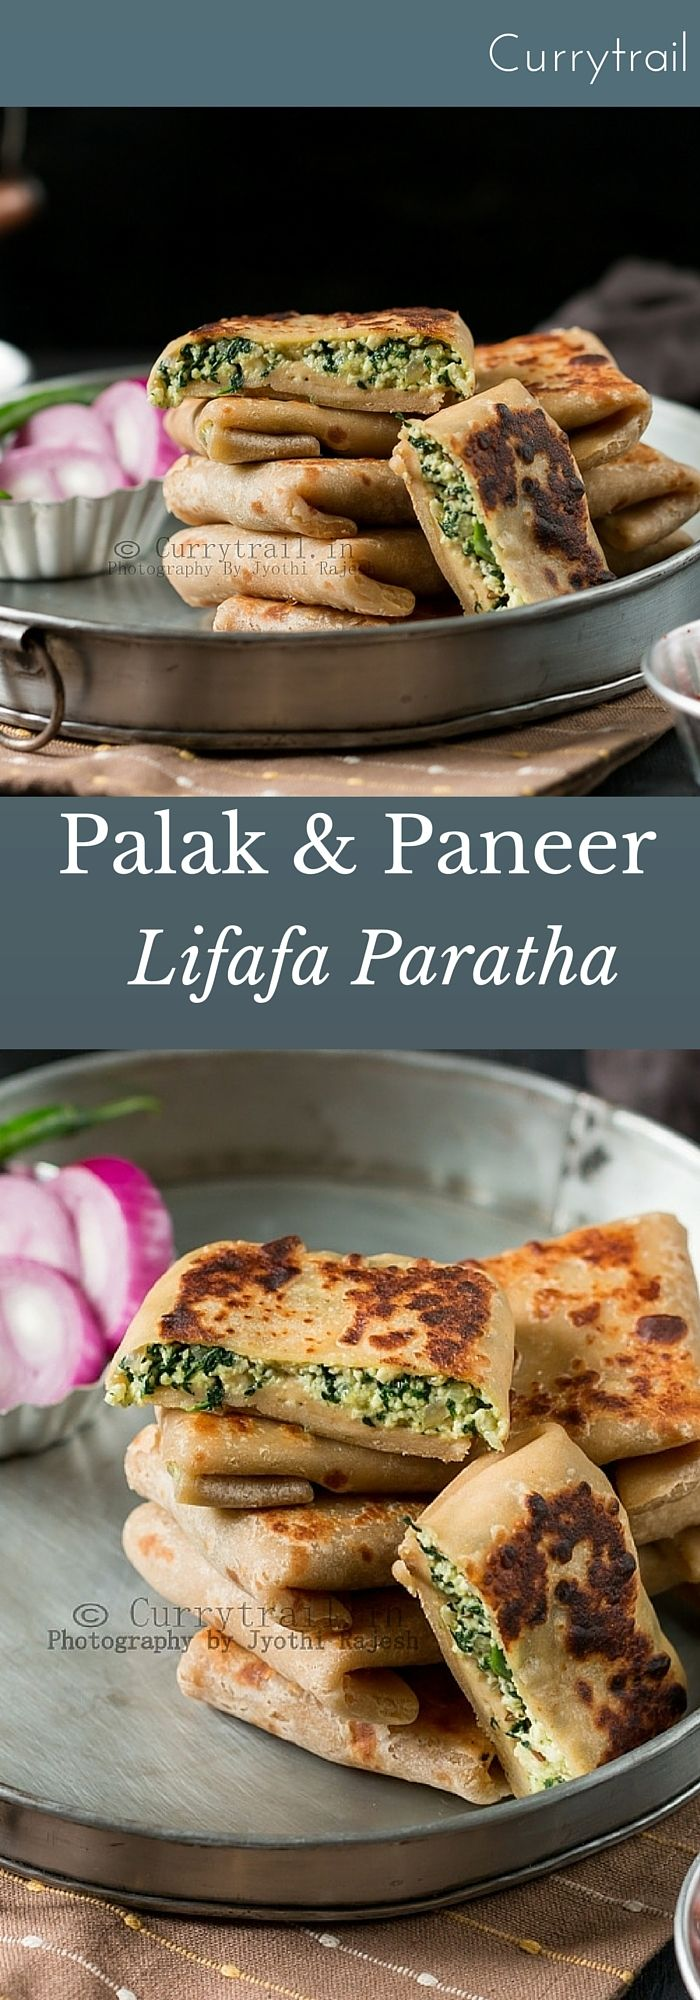 Whole Wheat Spinach Paneer Lifafa Paratha #indian #dinner                                                                                                                                                     More